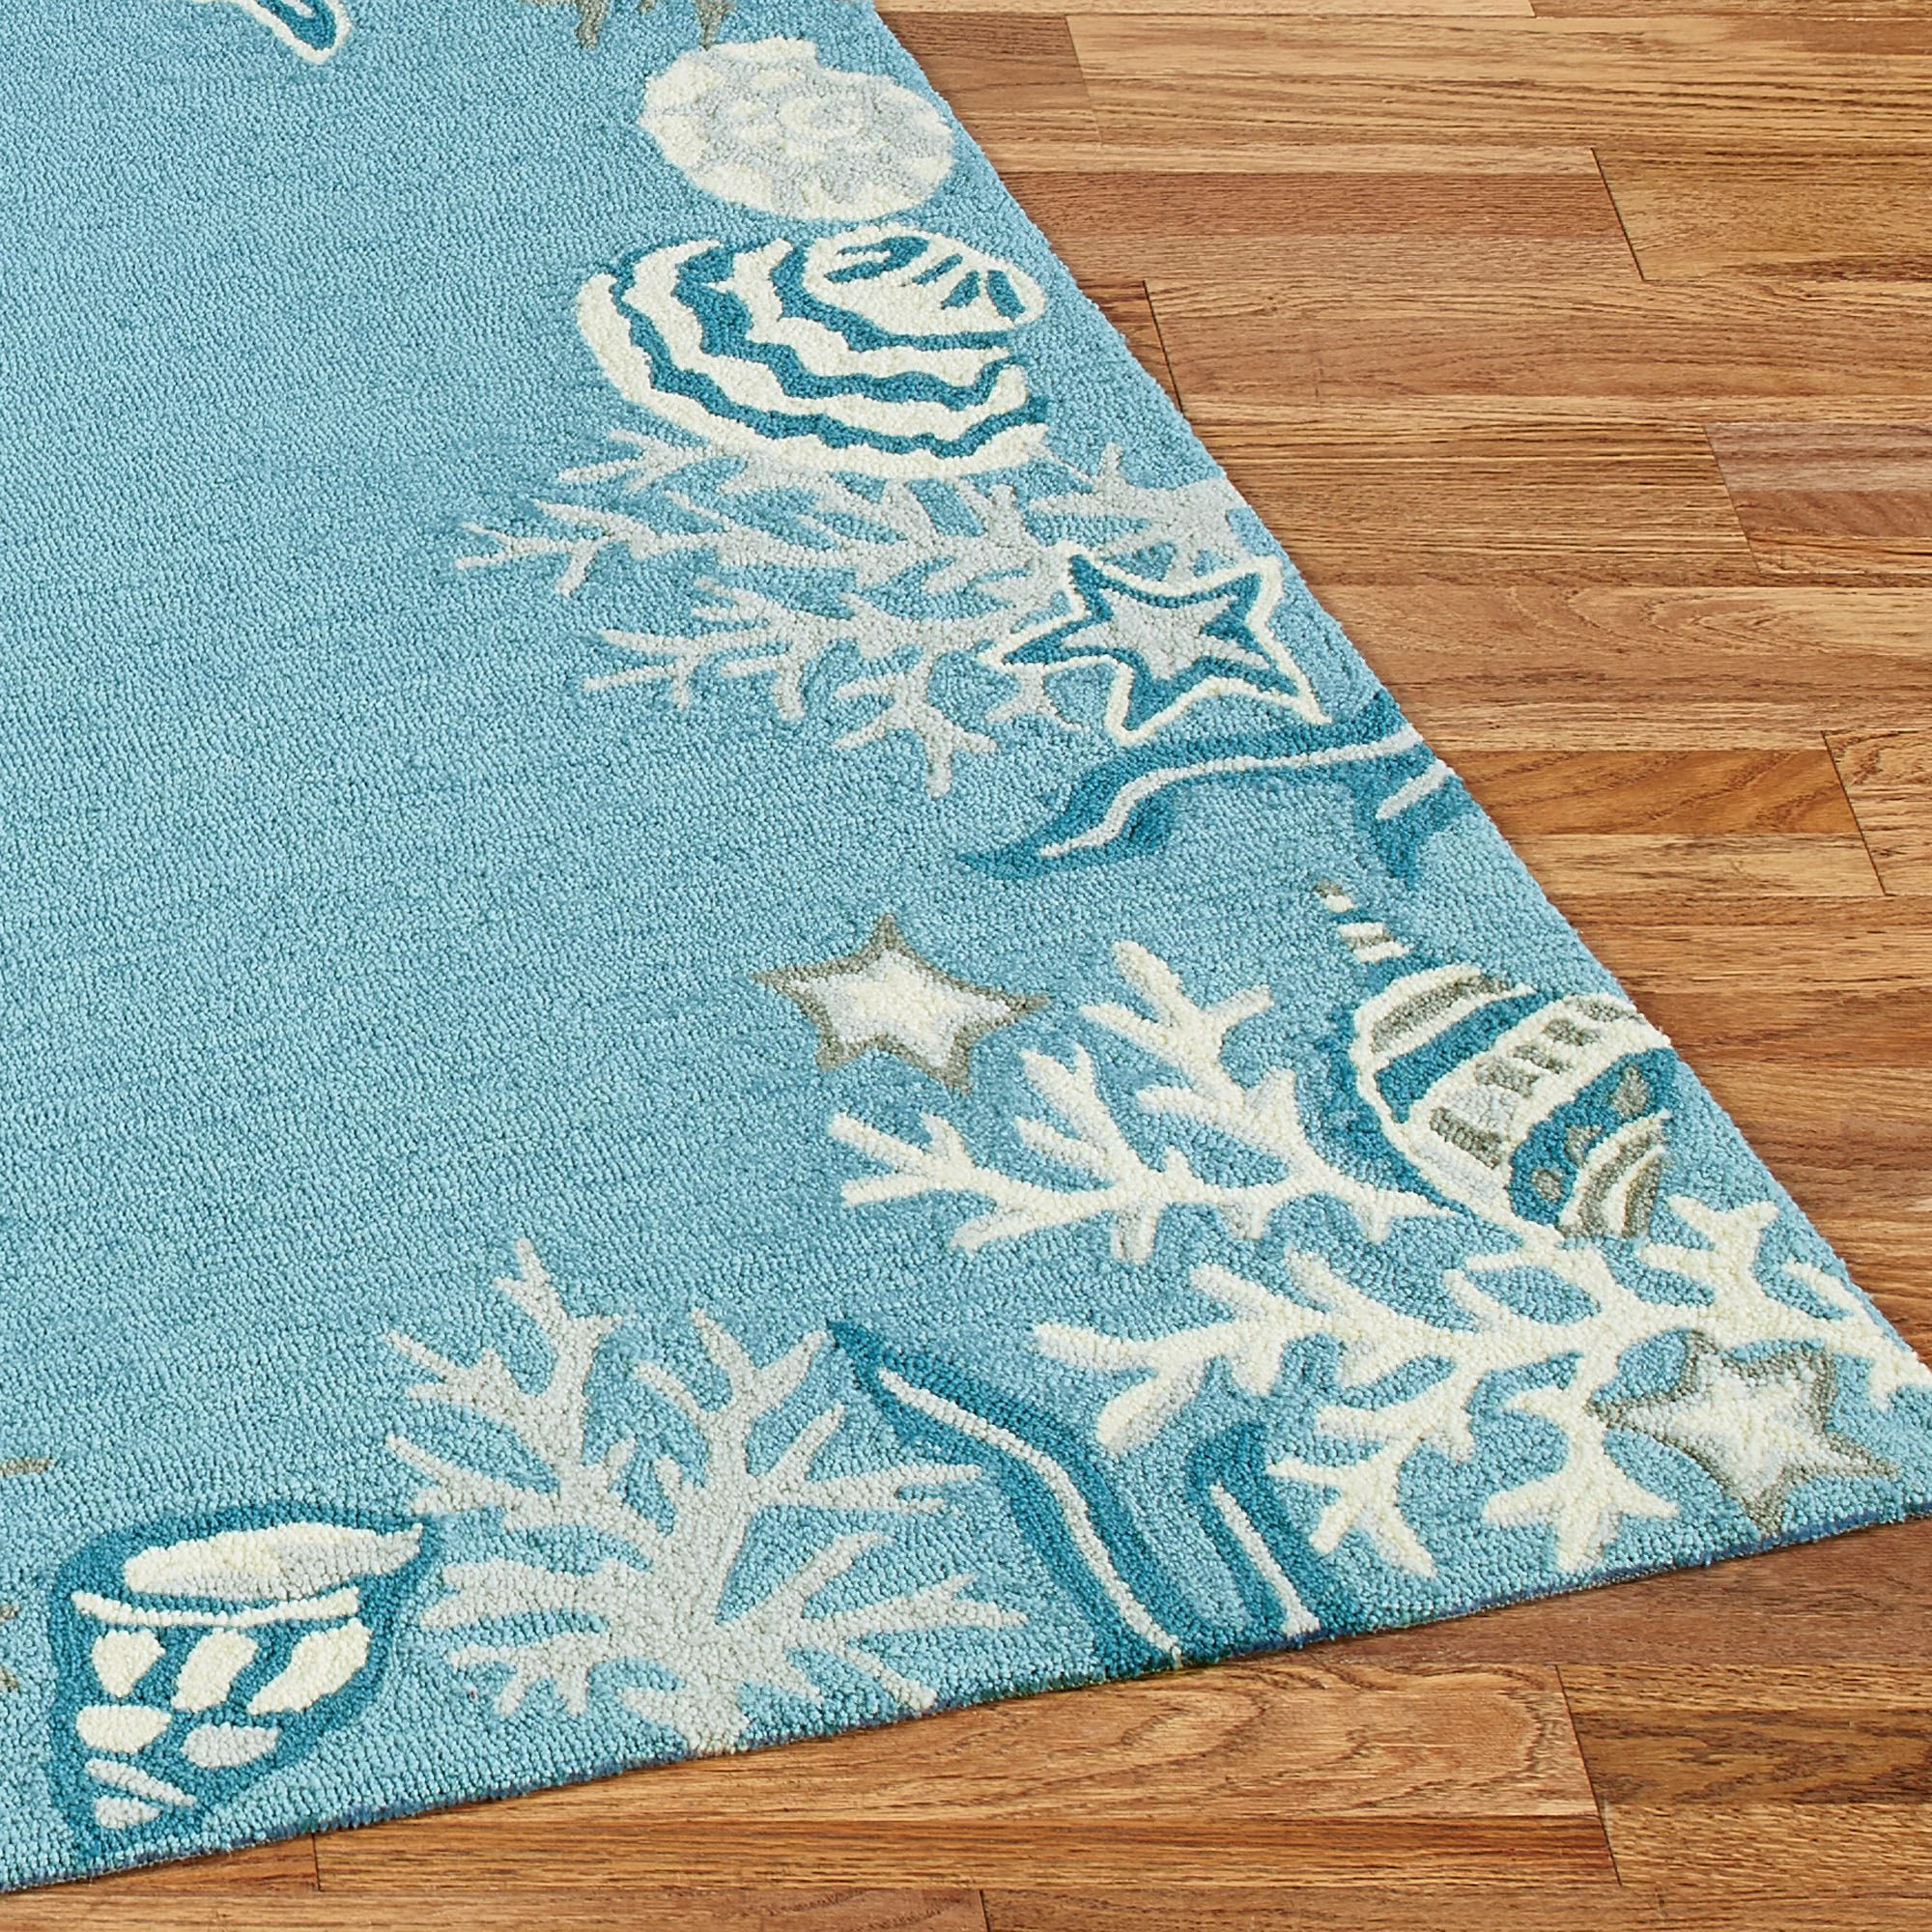 rugs soft floor design mat shaggy house itm hand home decor noble pile pebble tufted blue rug